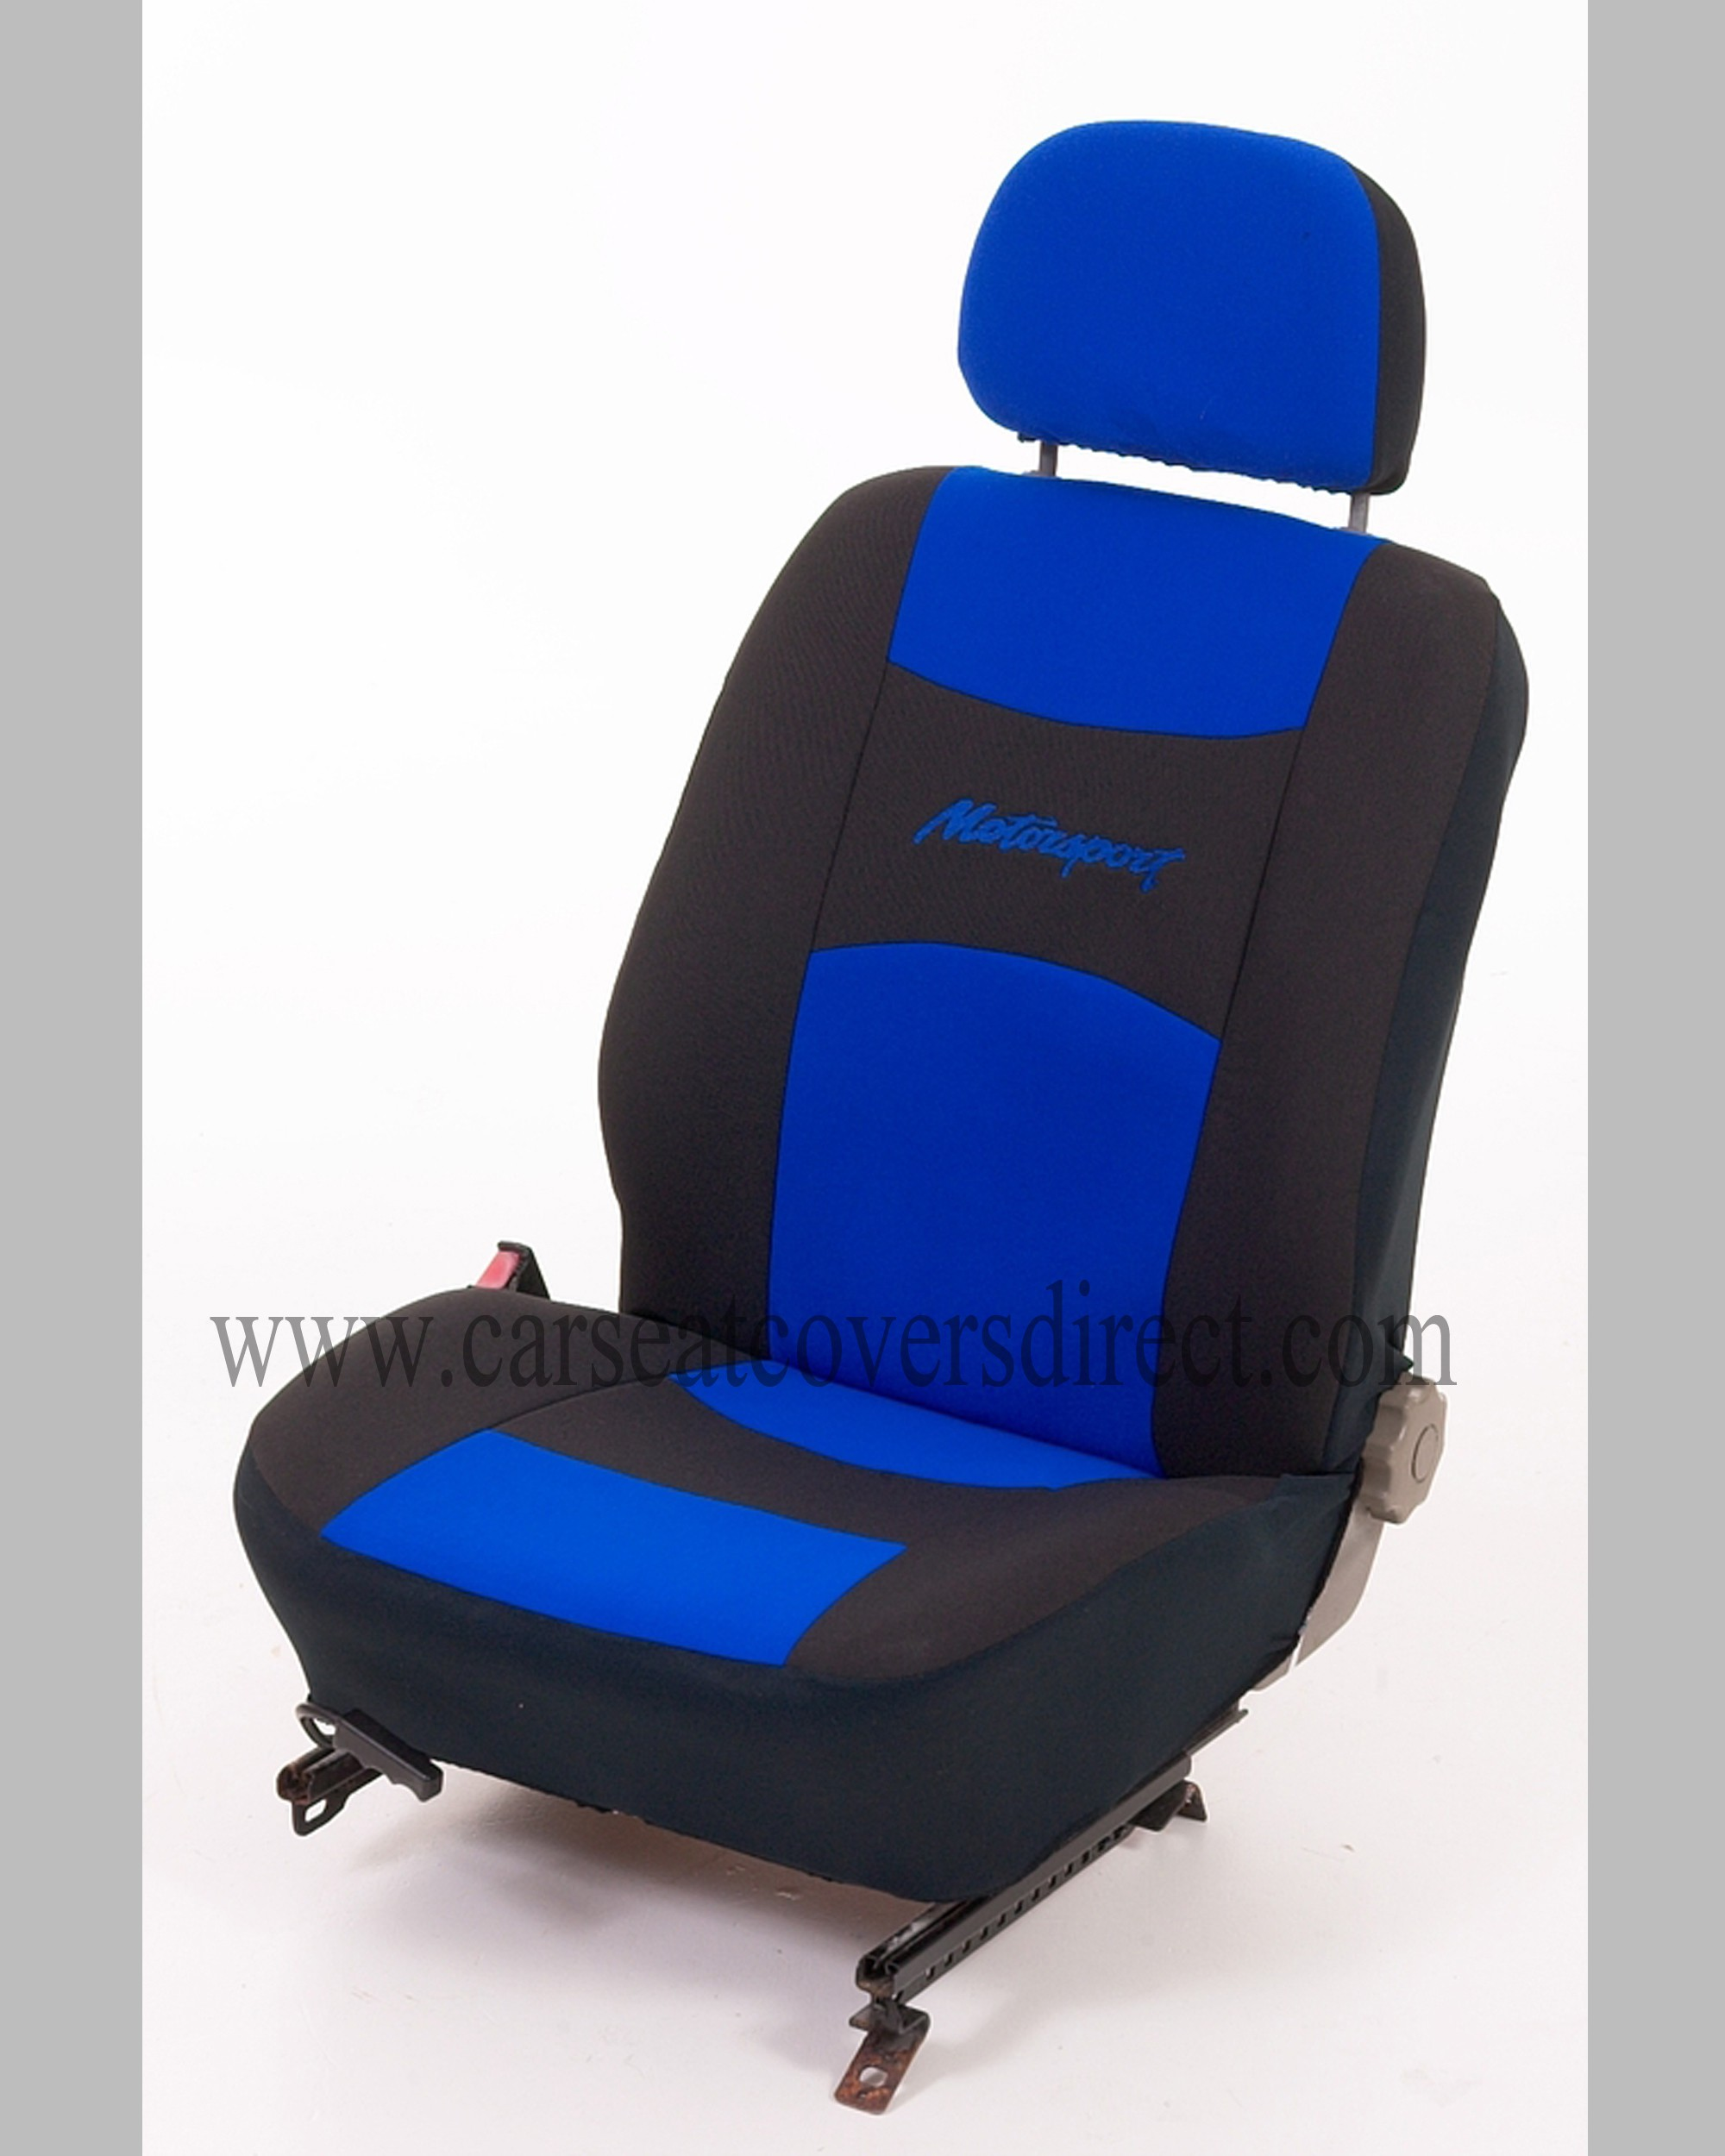 Motorsport UNIVERSAL Seat Covers (blue)